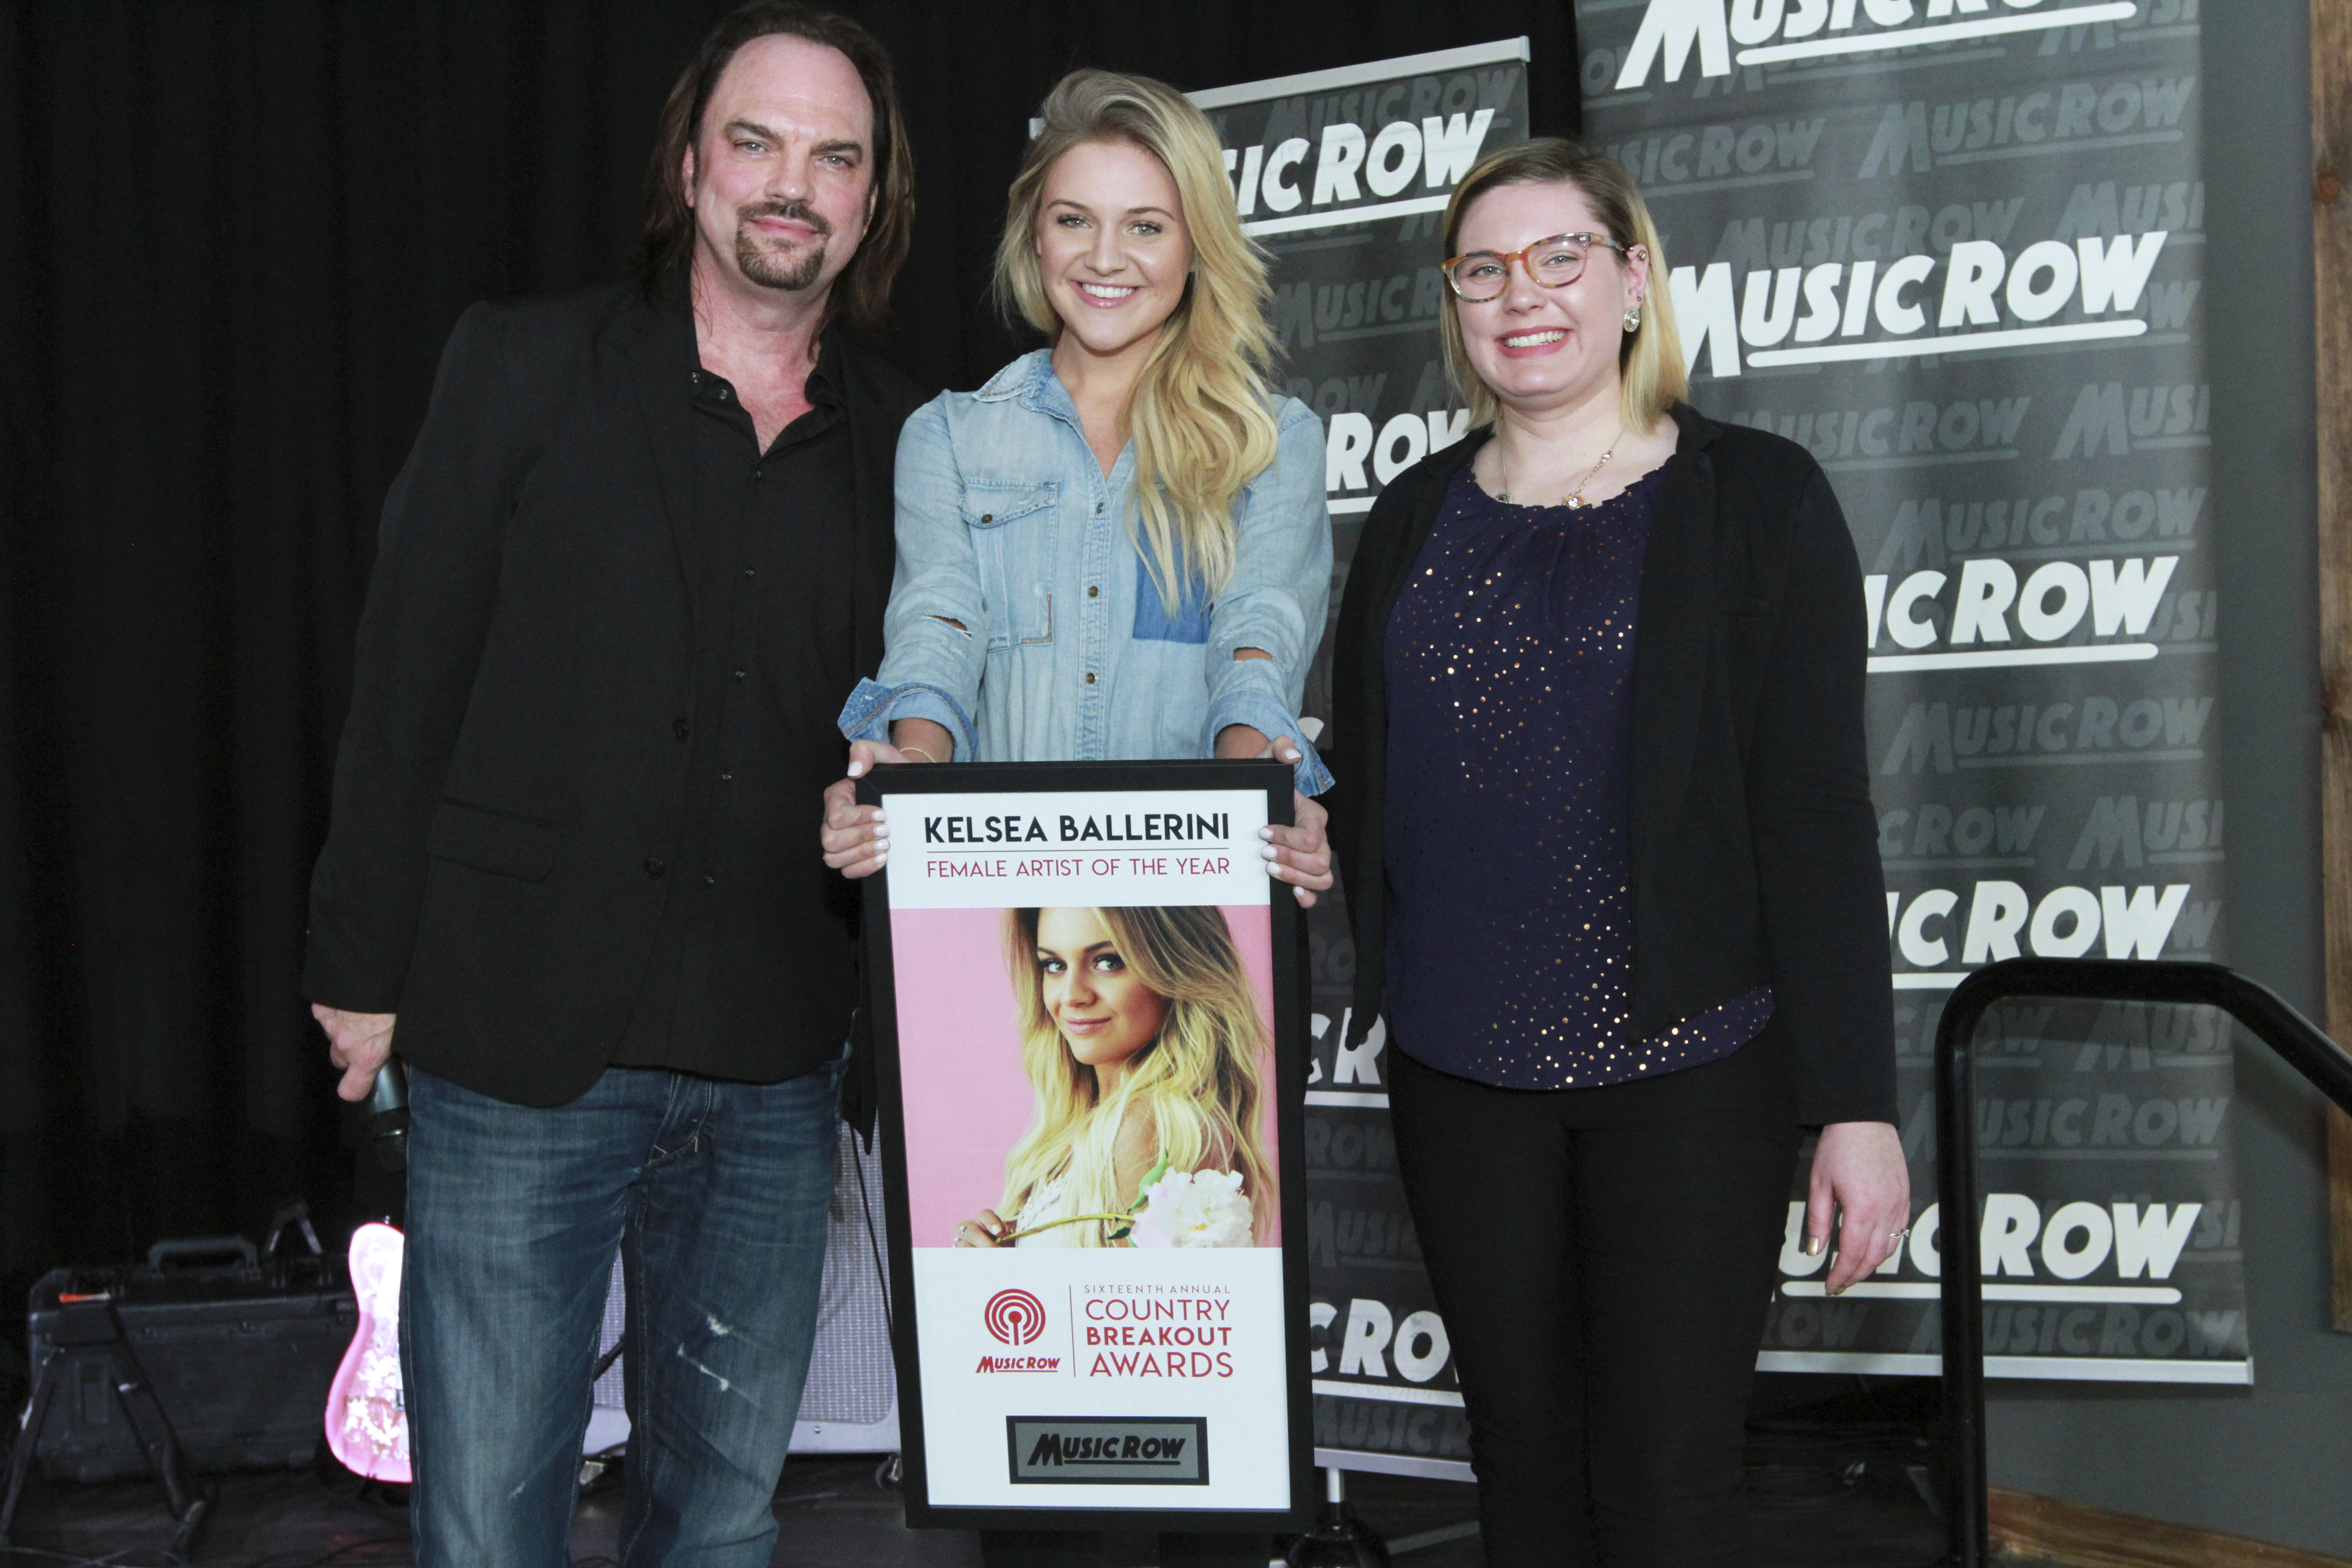 Musicrow Pics 2018 Countrybreakout Awards Musicrow Nashvilles